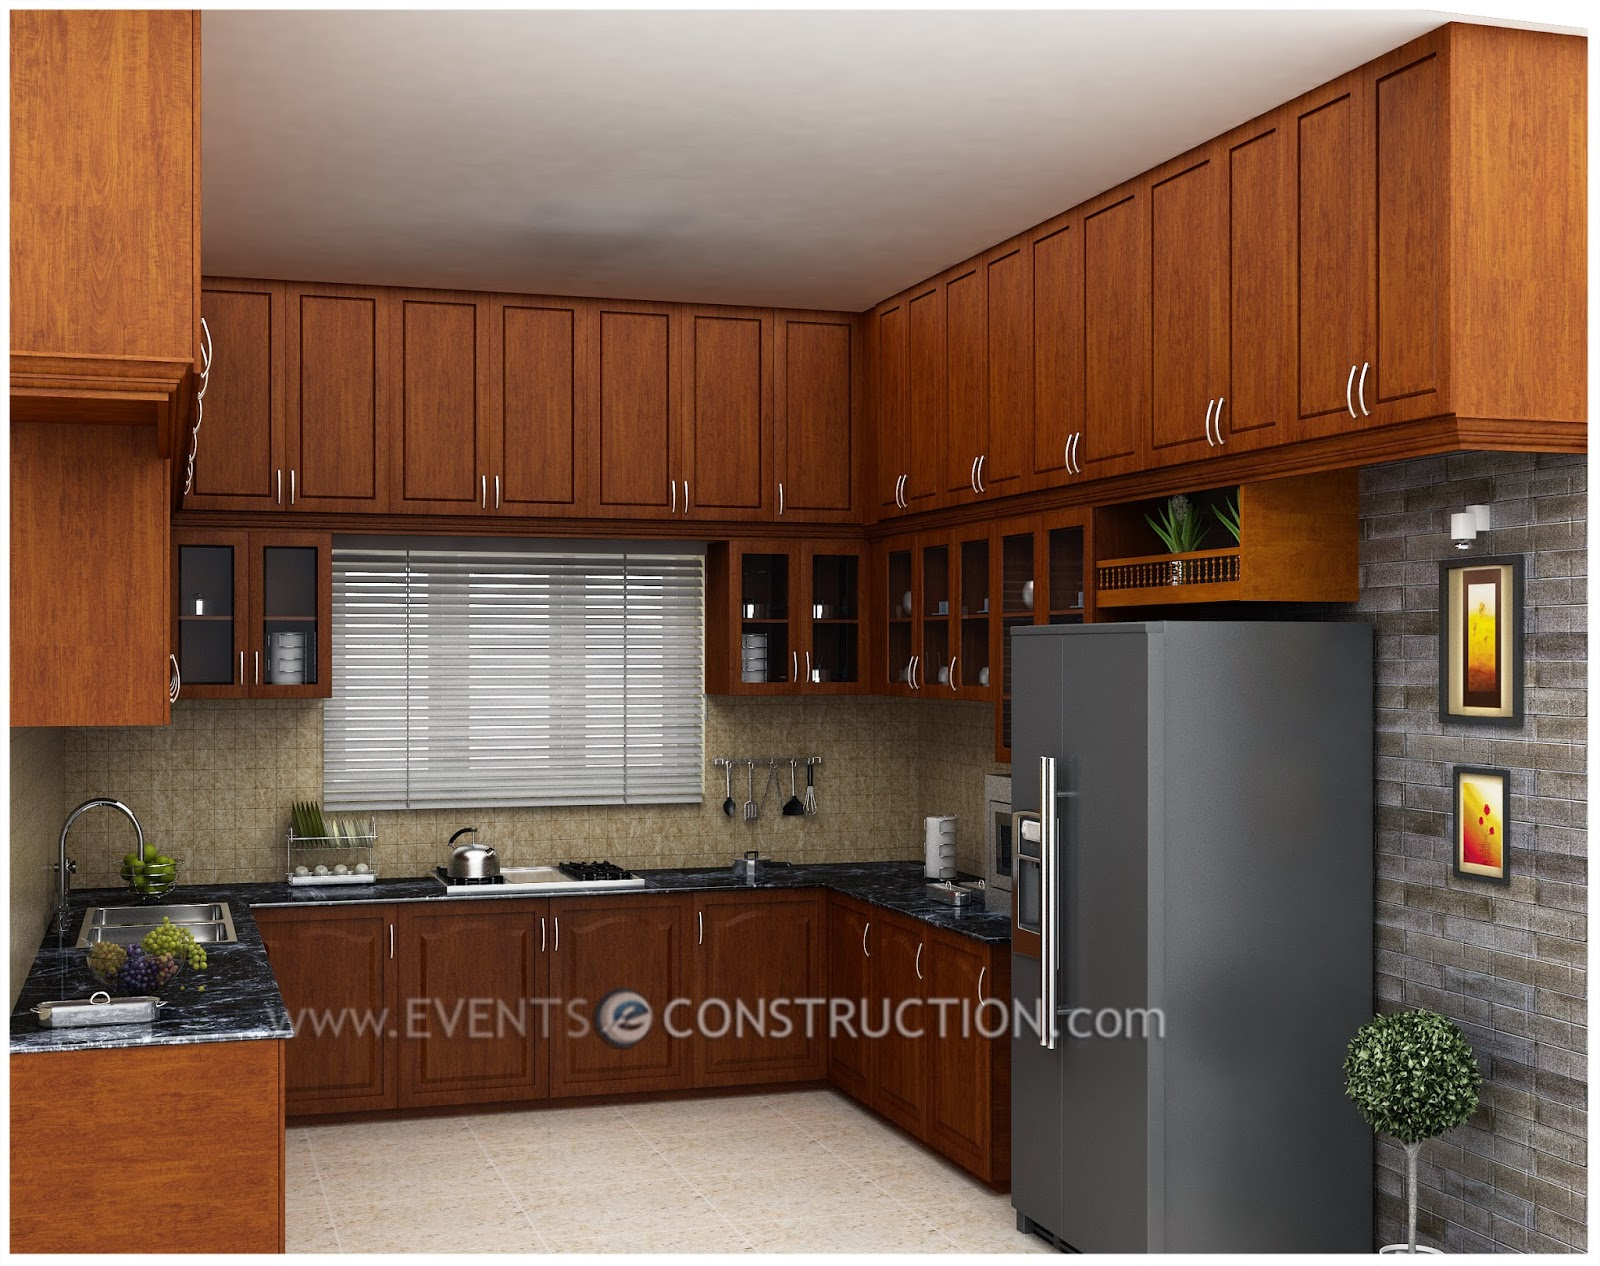 Kerala kitchen joy studio design gallery best design for Kitchen designs kerala